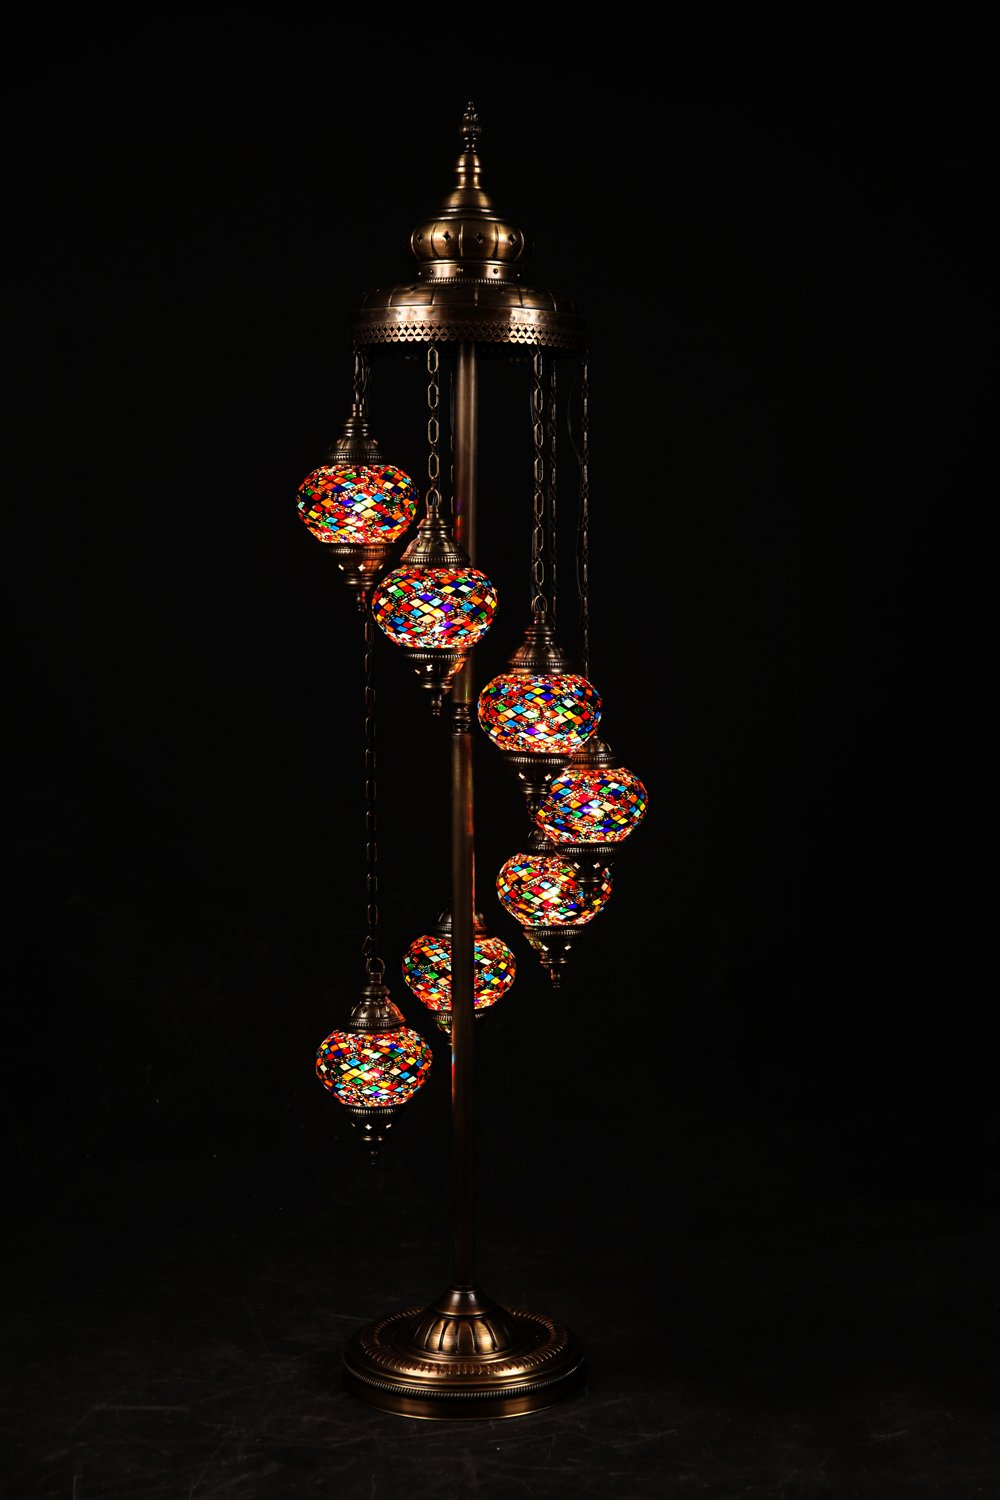 (Height: 55.1 in) Mosaic Standing Floor 7 Globes, Handmade Authentic Tiffany Moroccan Lamp Glass Stunning Bedside Night Lights Brass&Glass Ottoman Turkish Style Modern Mood Lighting for Bedroom